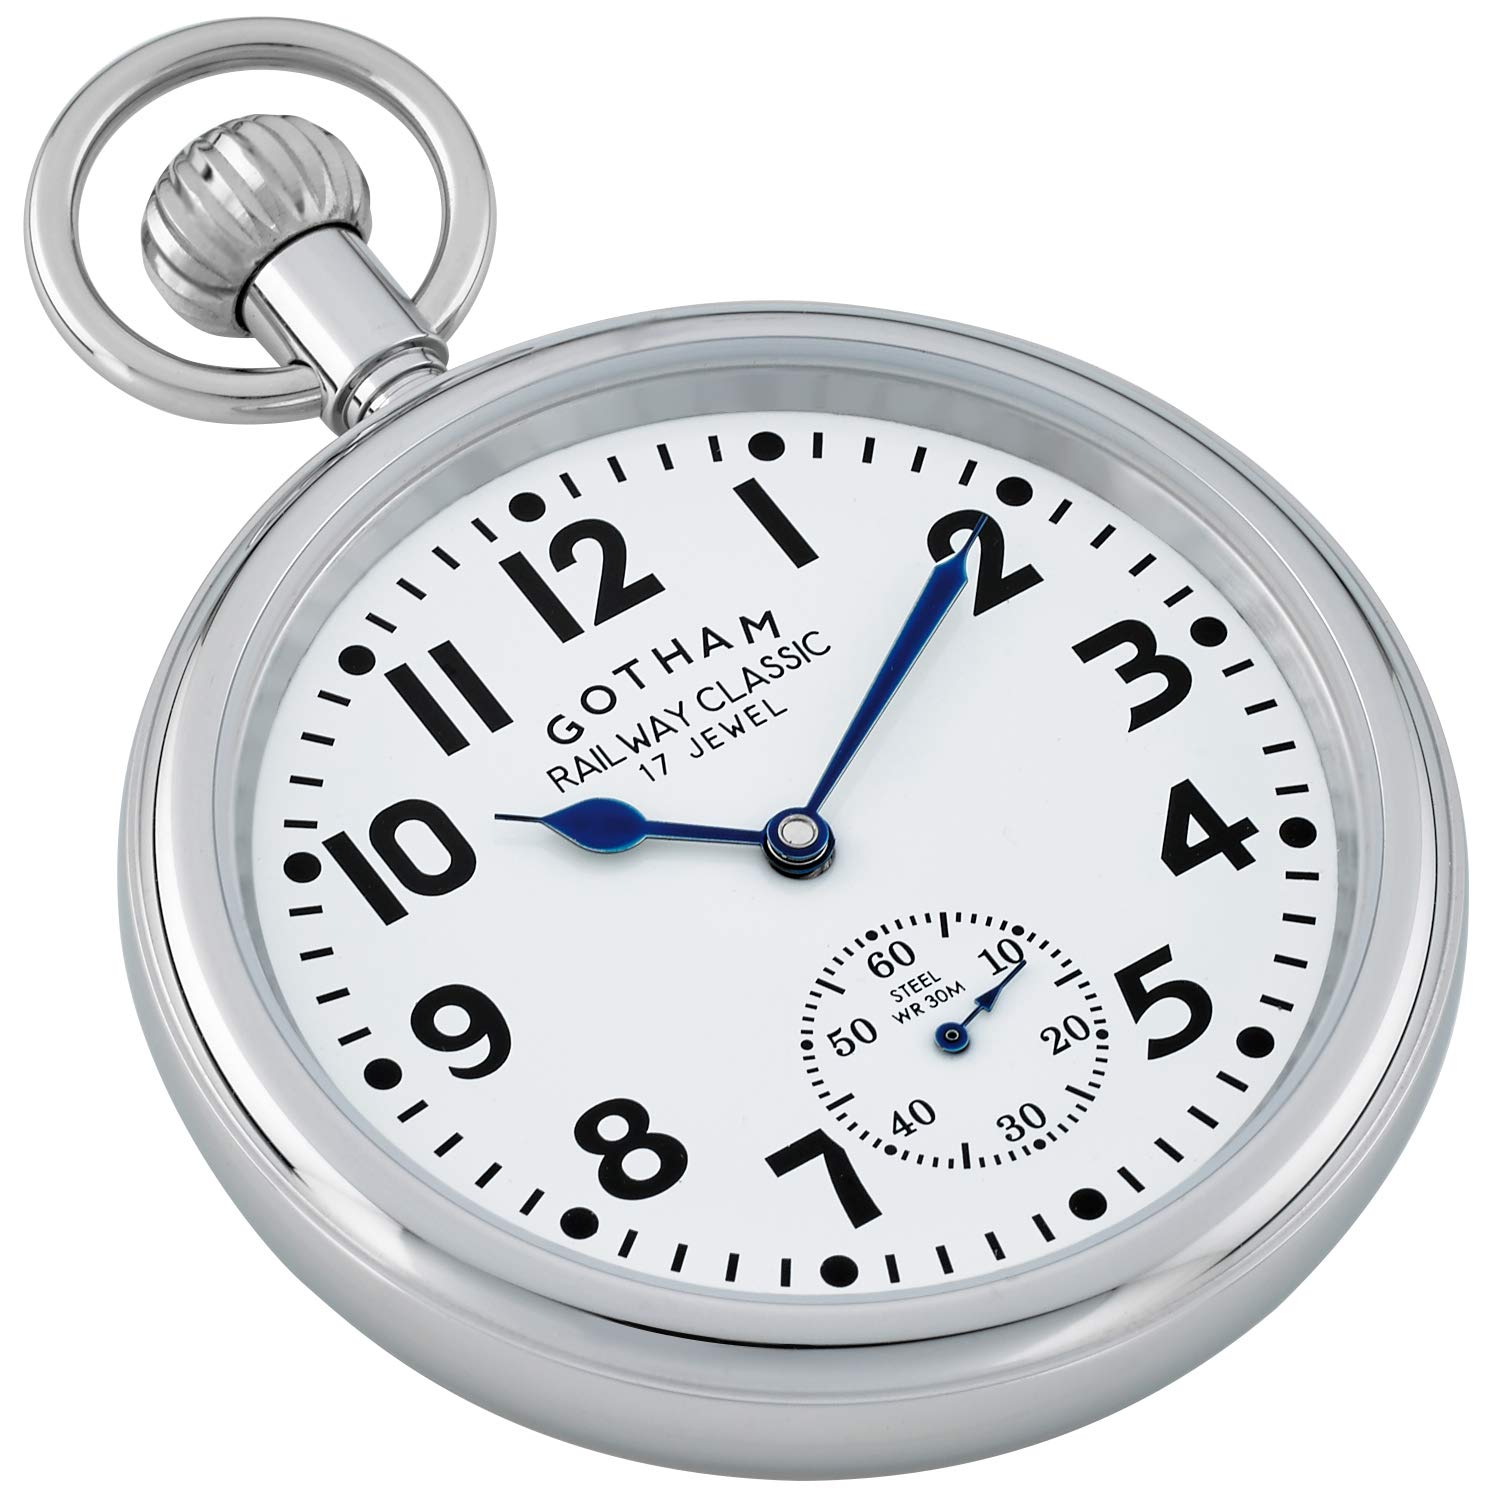 Gotham Men's Stainless Steel Mechanical Hand Wind Railroad Pocket Watch # GWC14104s by Gotham (Image #2)